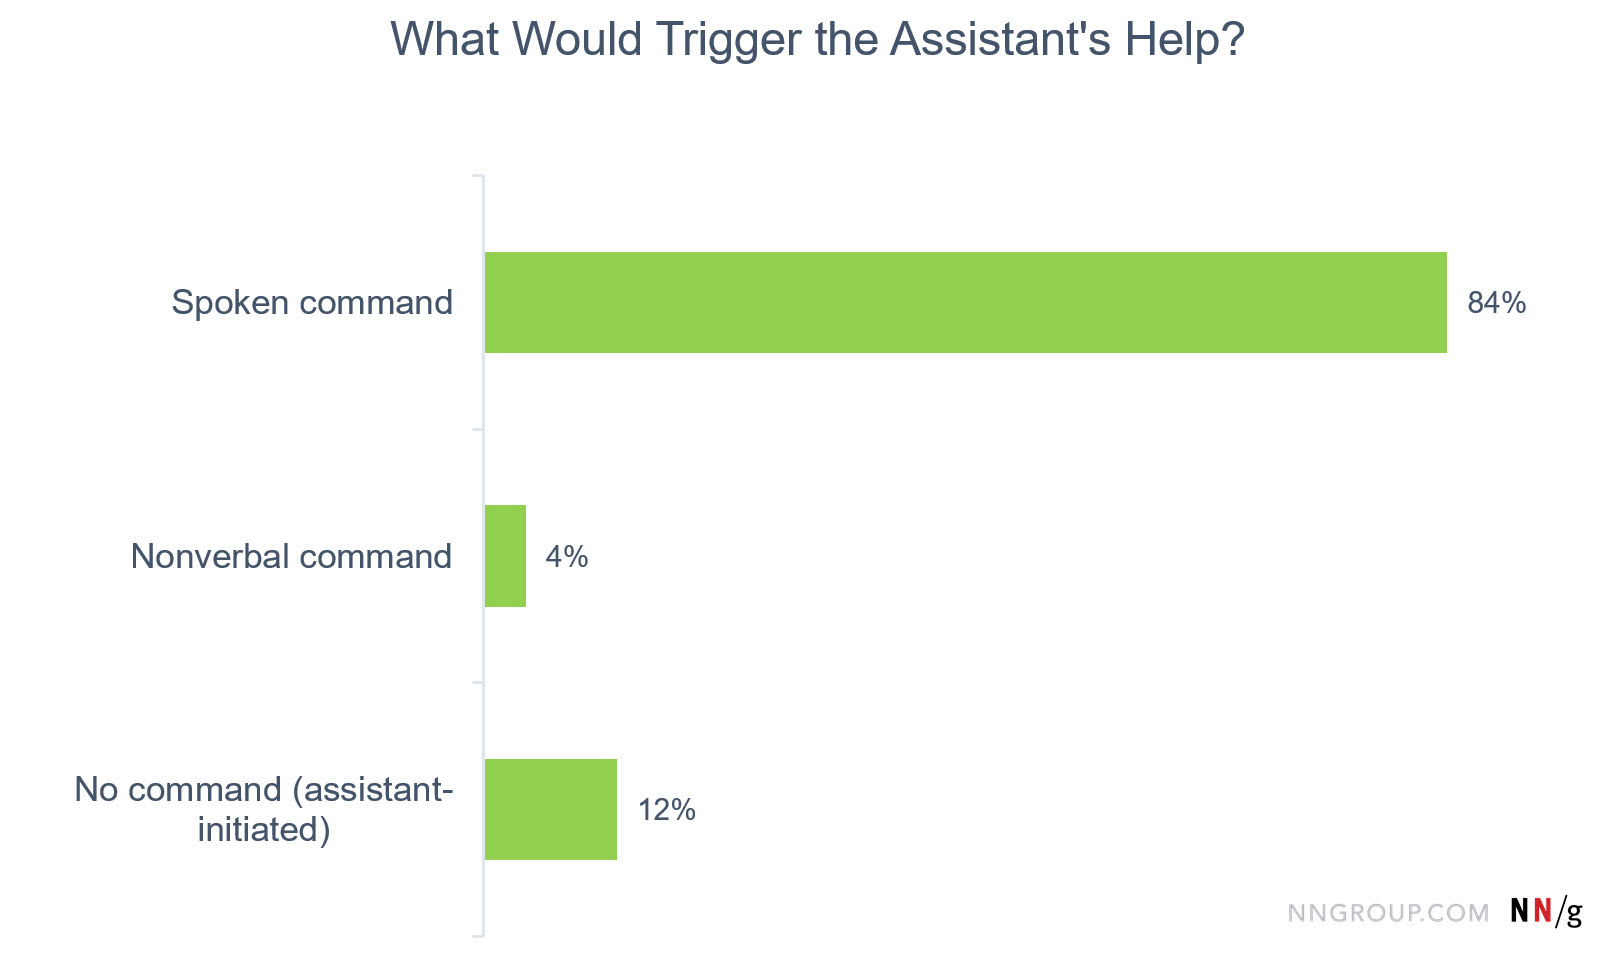 Bar chart: What Would Trigger the Assistant's Help? Spoken command =84%; nonverbal command = 4%; no command = 12%